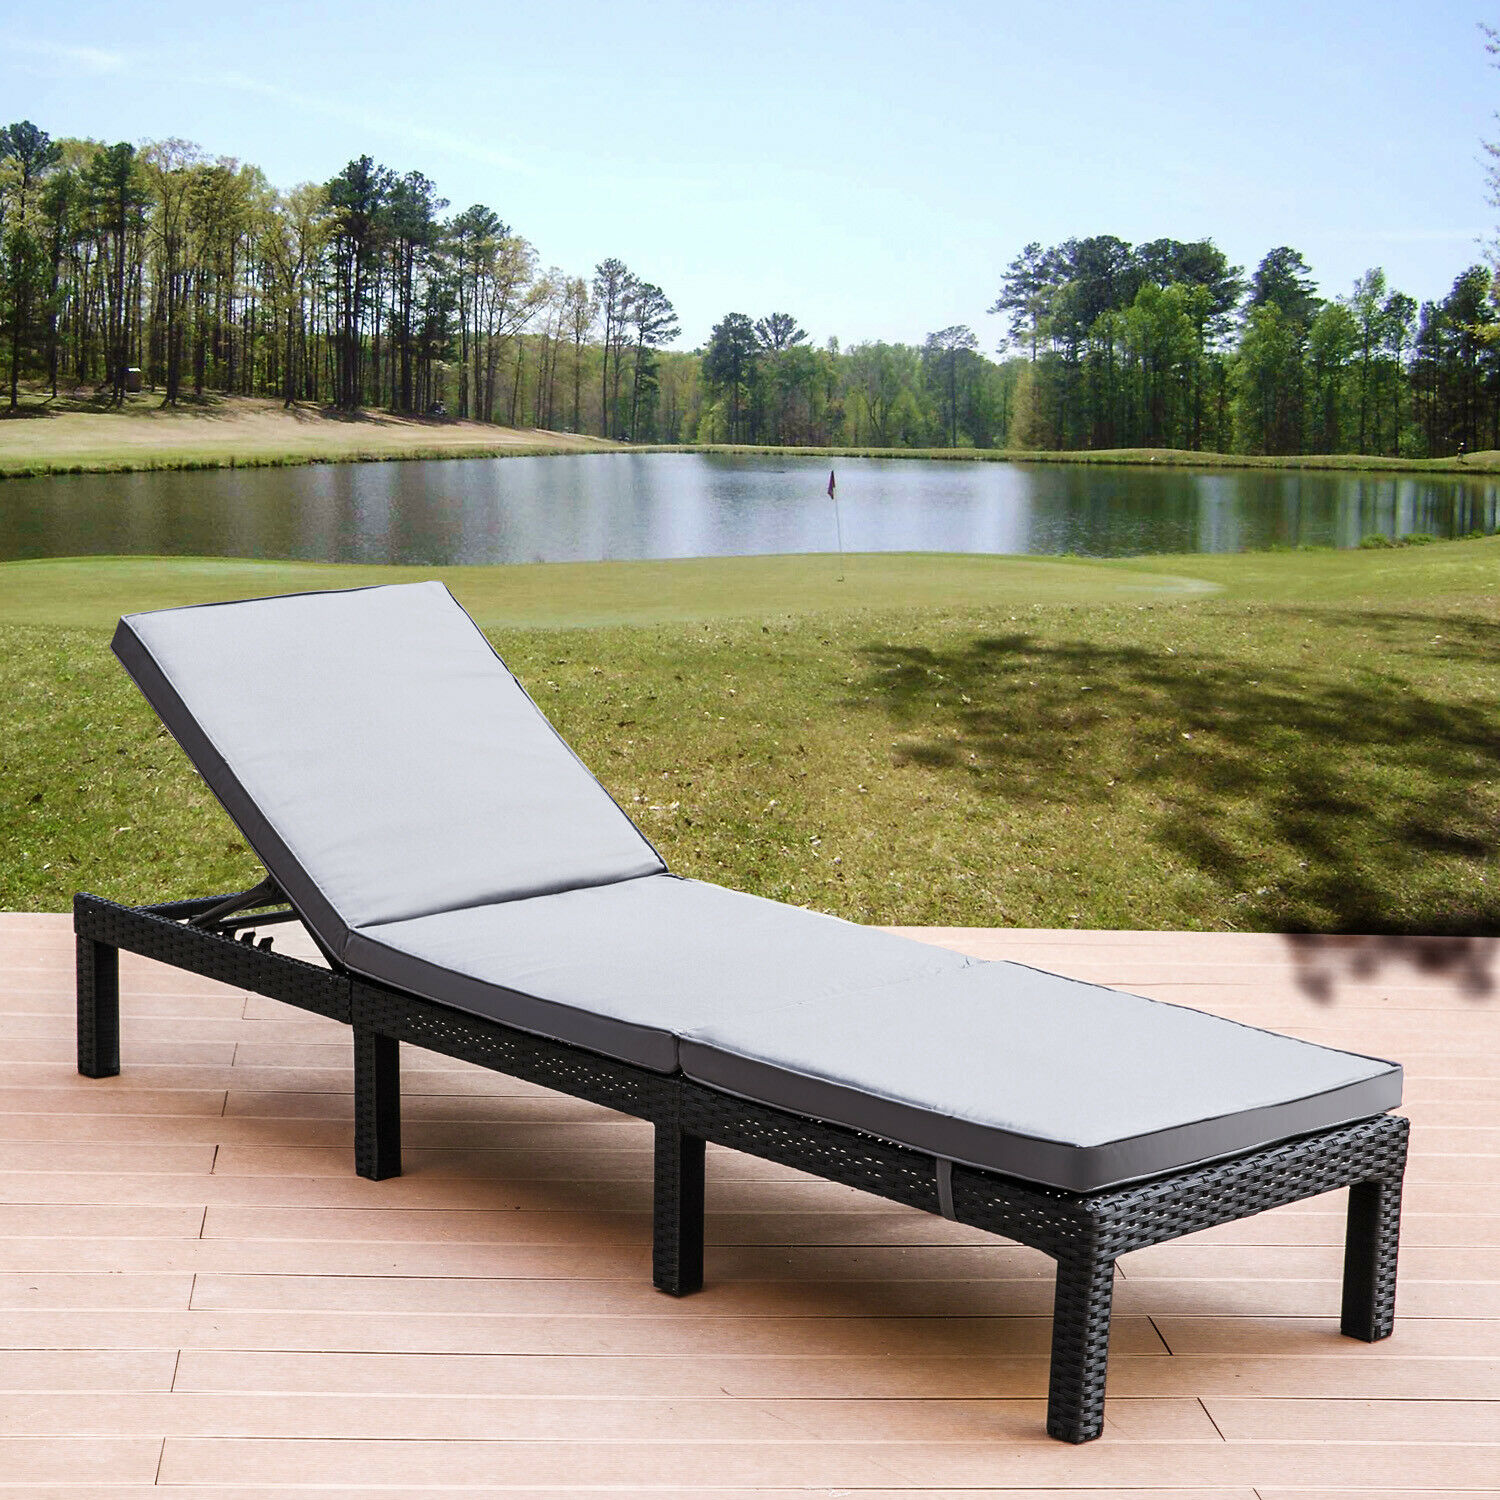 Garden Furniture -  Rattan Sunlounger Garden Outdoor Recliner Furniture with Removable Grey Cushion